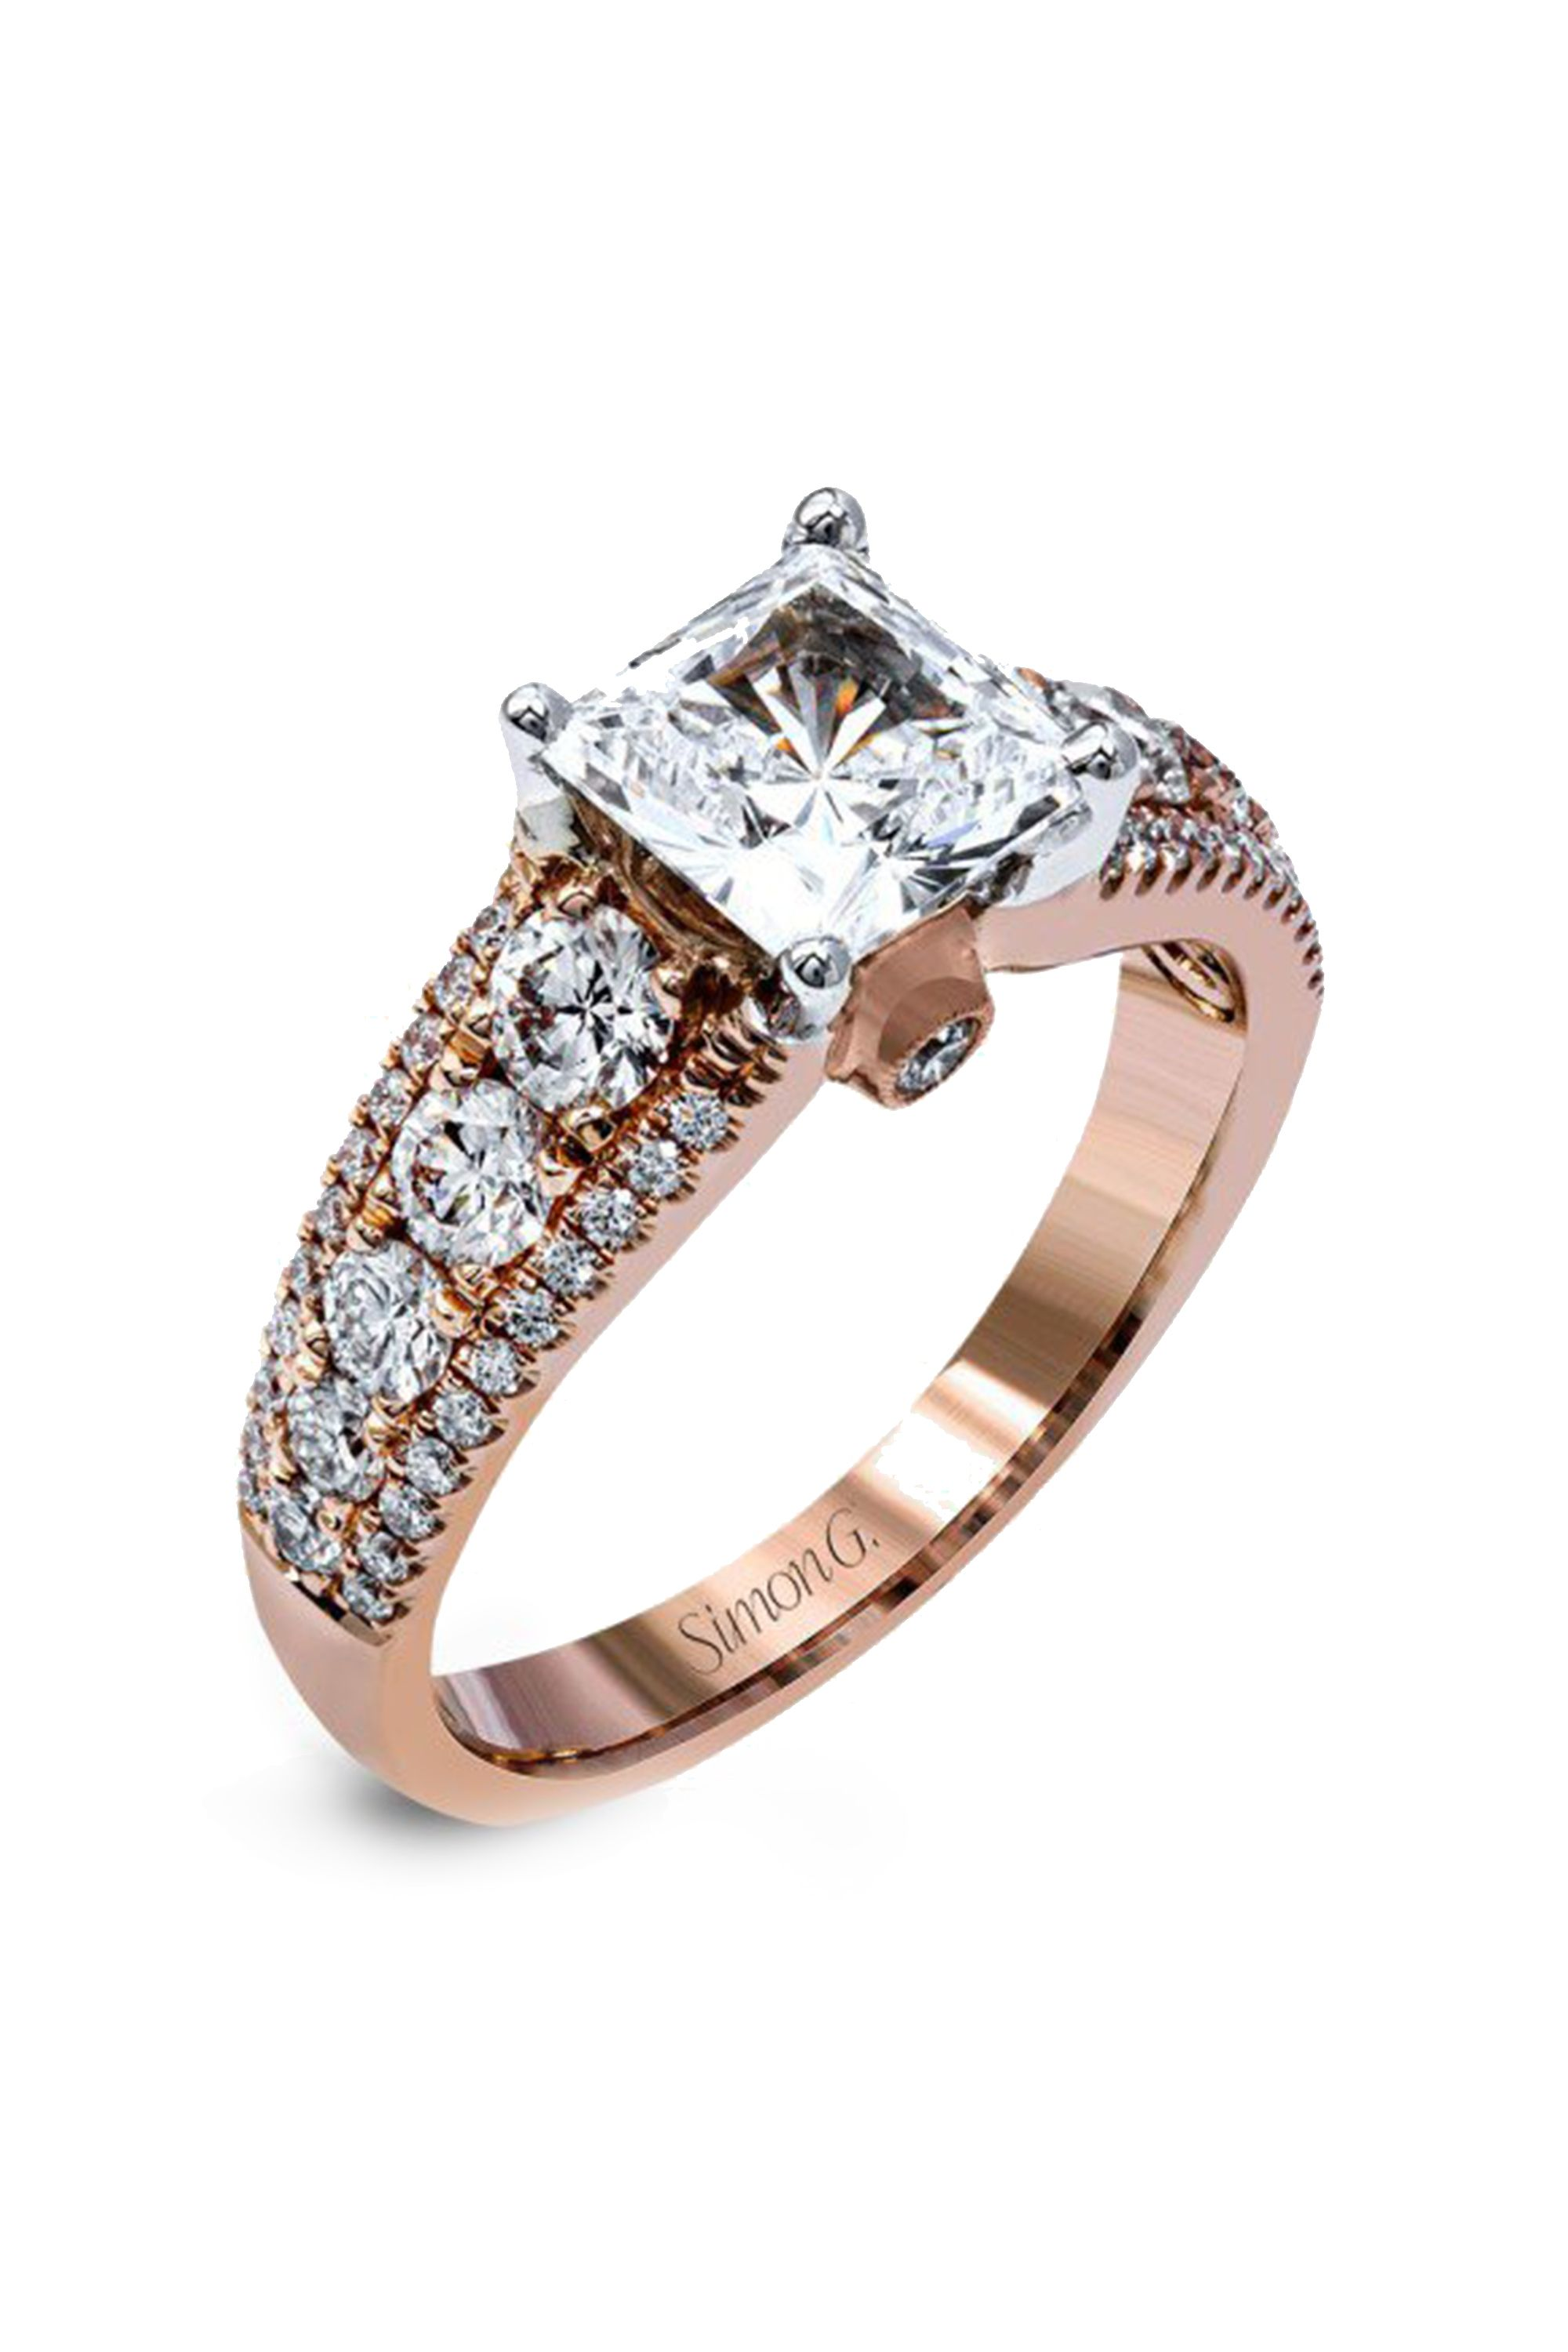 and matching wedding sets rose platinum galleries gold mccaul goldsmiths women s band men bands